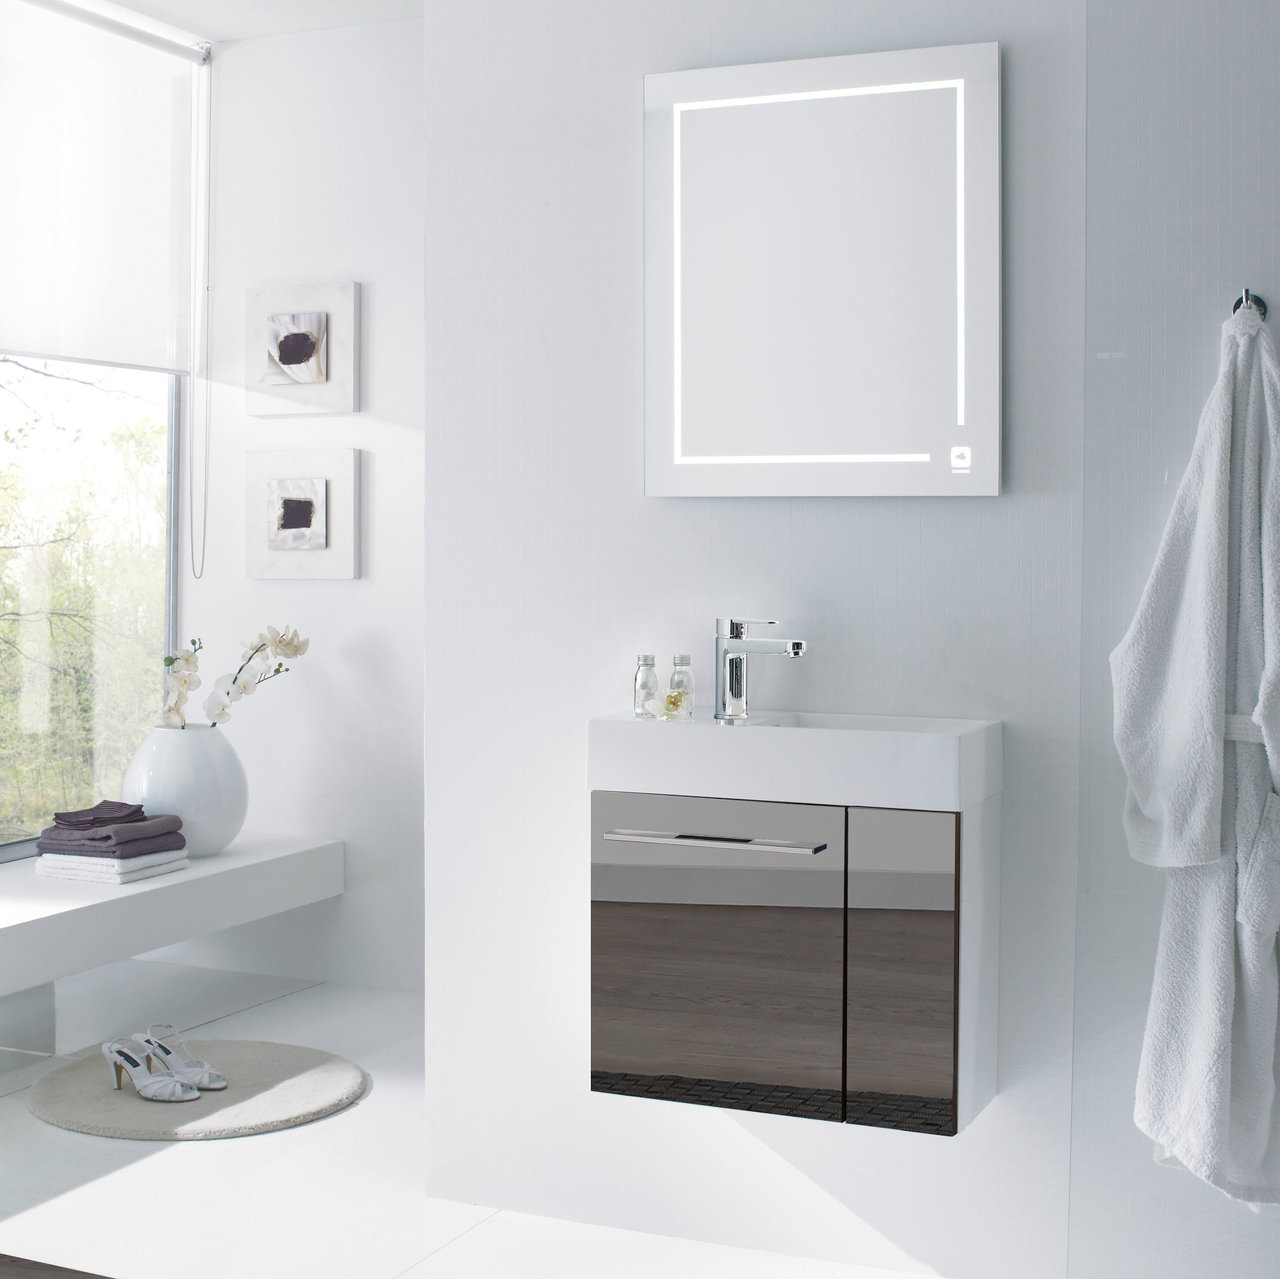 Leonardo bad 109 leonardo badm bel marken badm bel for H g bathrooms brookvale